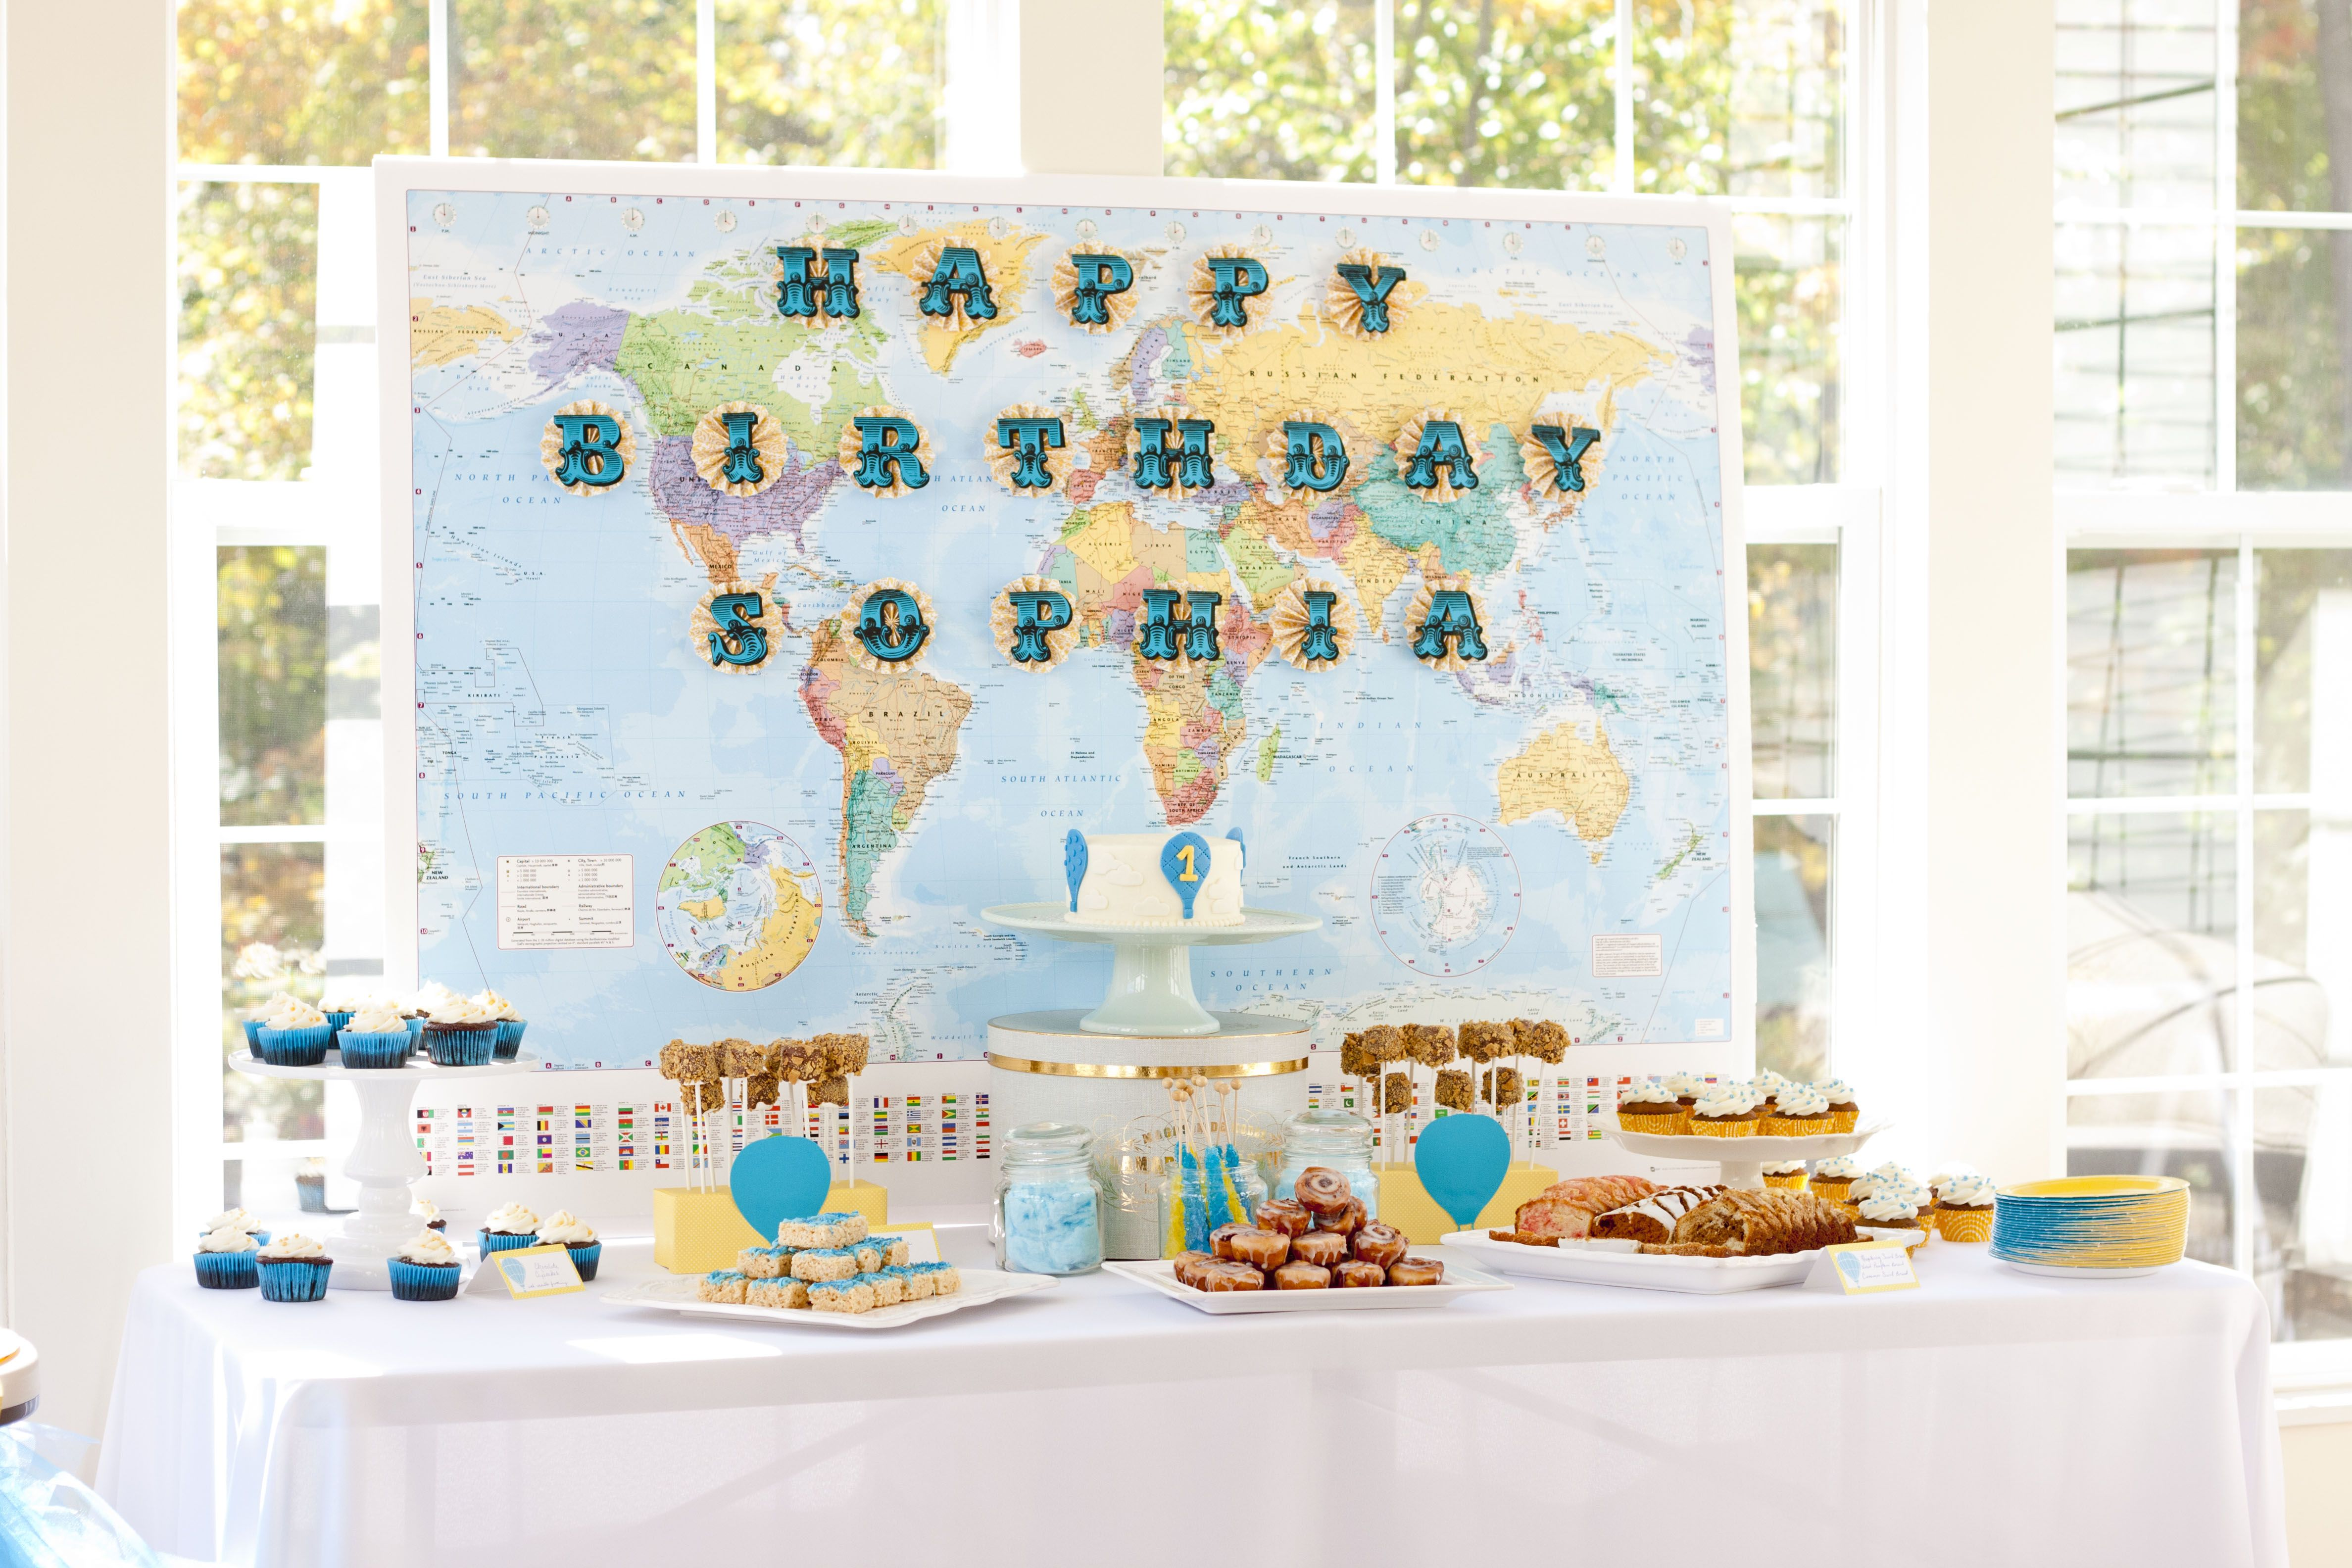 Sweets table for her 1st birthday party | My Style | Pinterest